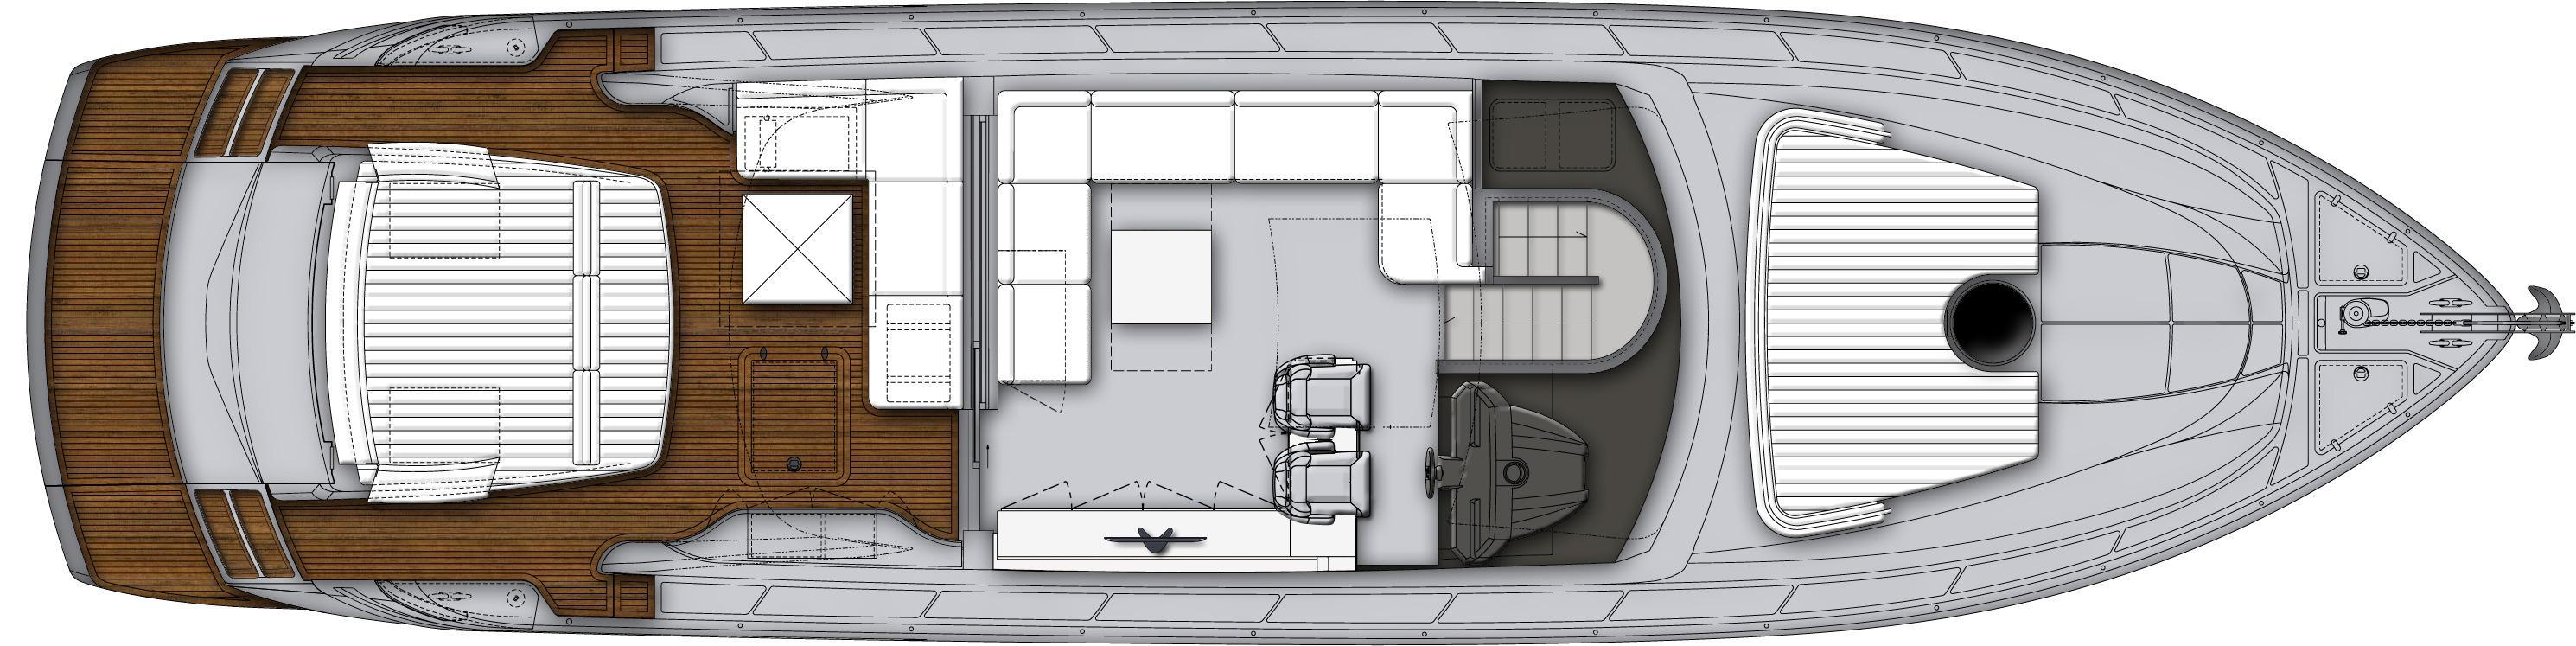 Manufacturer Provided Image: Pershing 62 Upper Deck Layout Plan